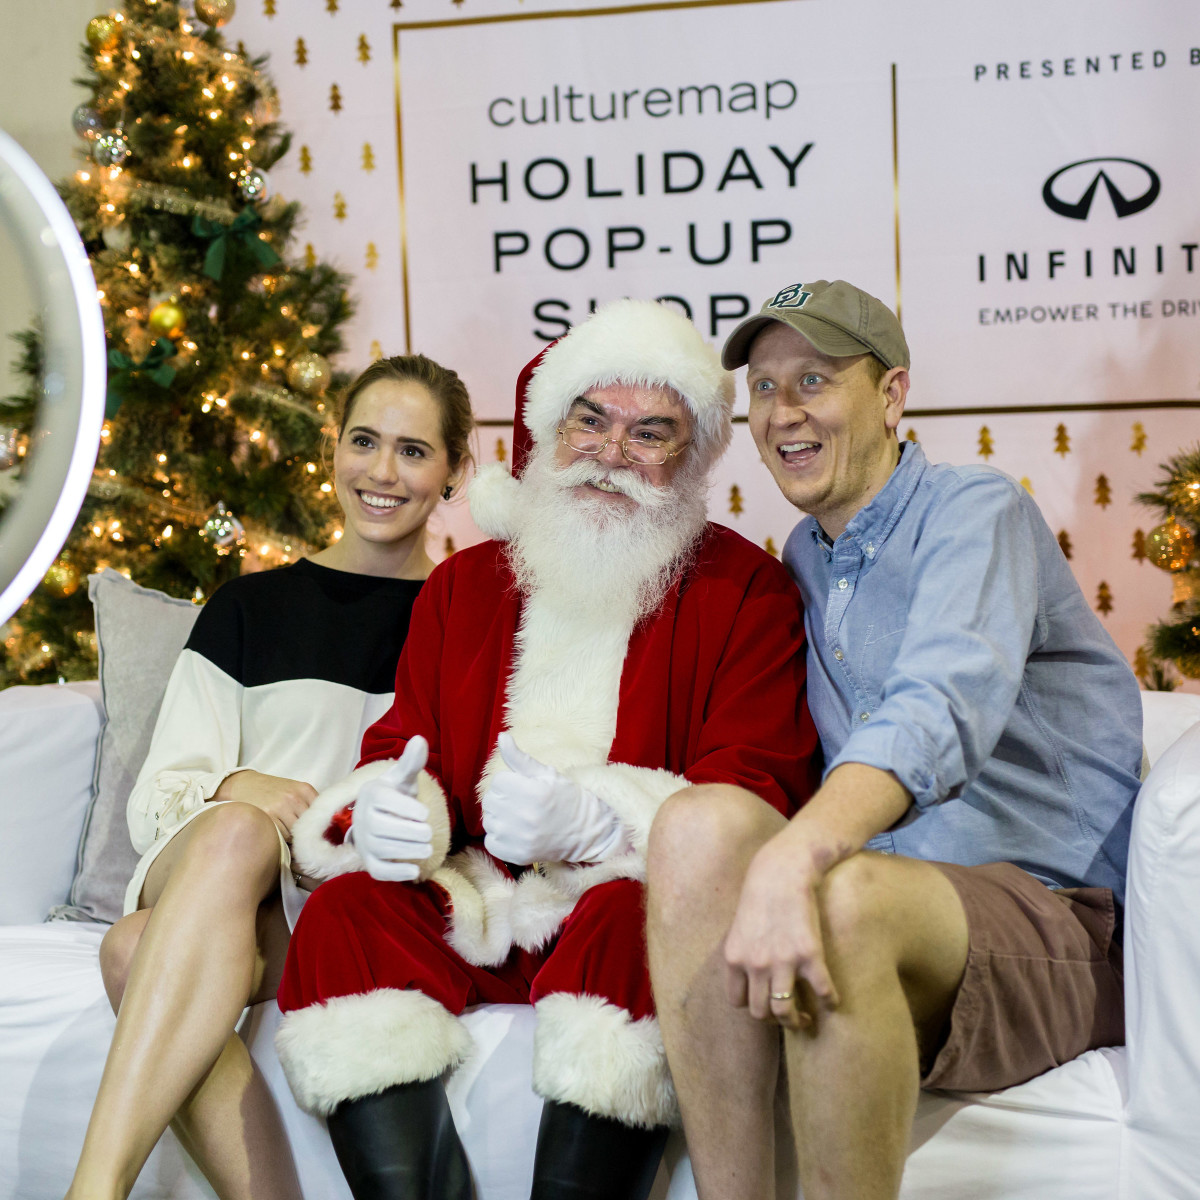 Houston, CultureMap Holiday Pop-Up Shop, November 2017, Amy Renz, Adam Renz